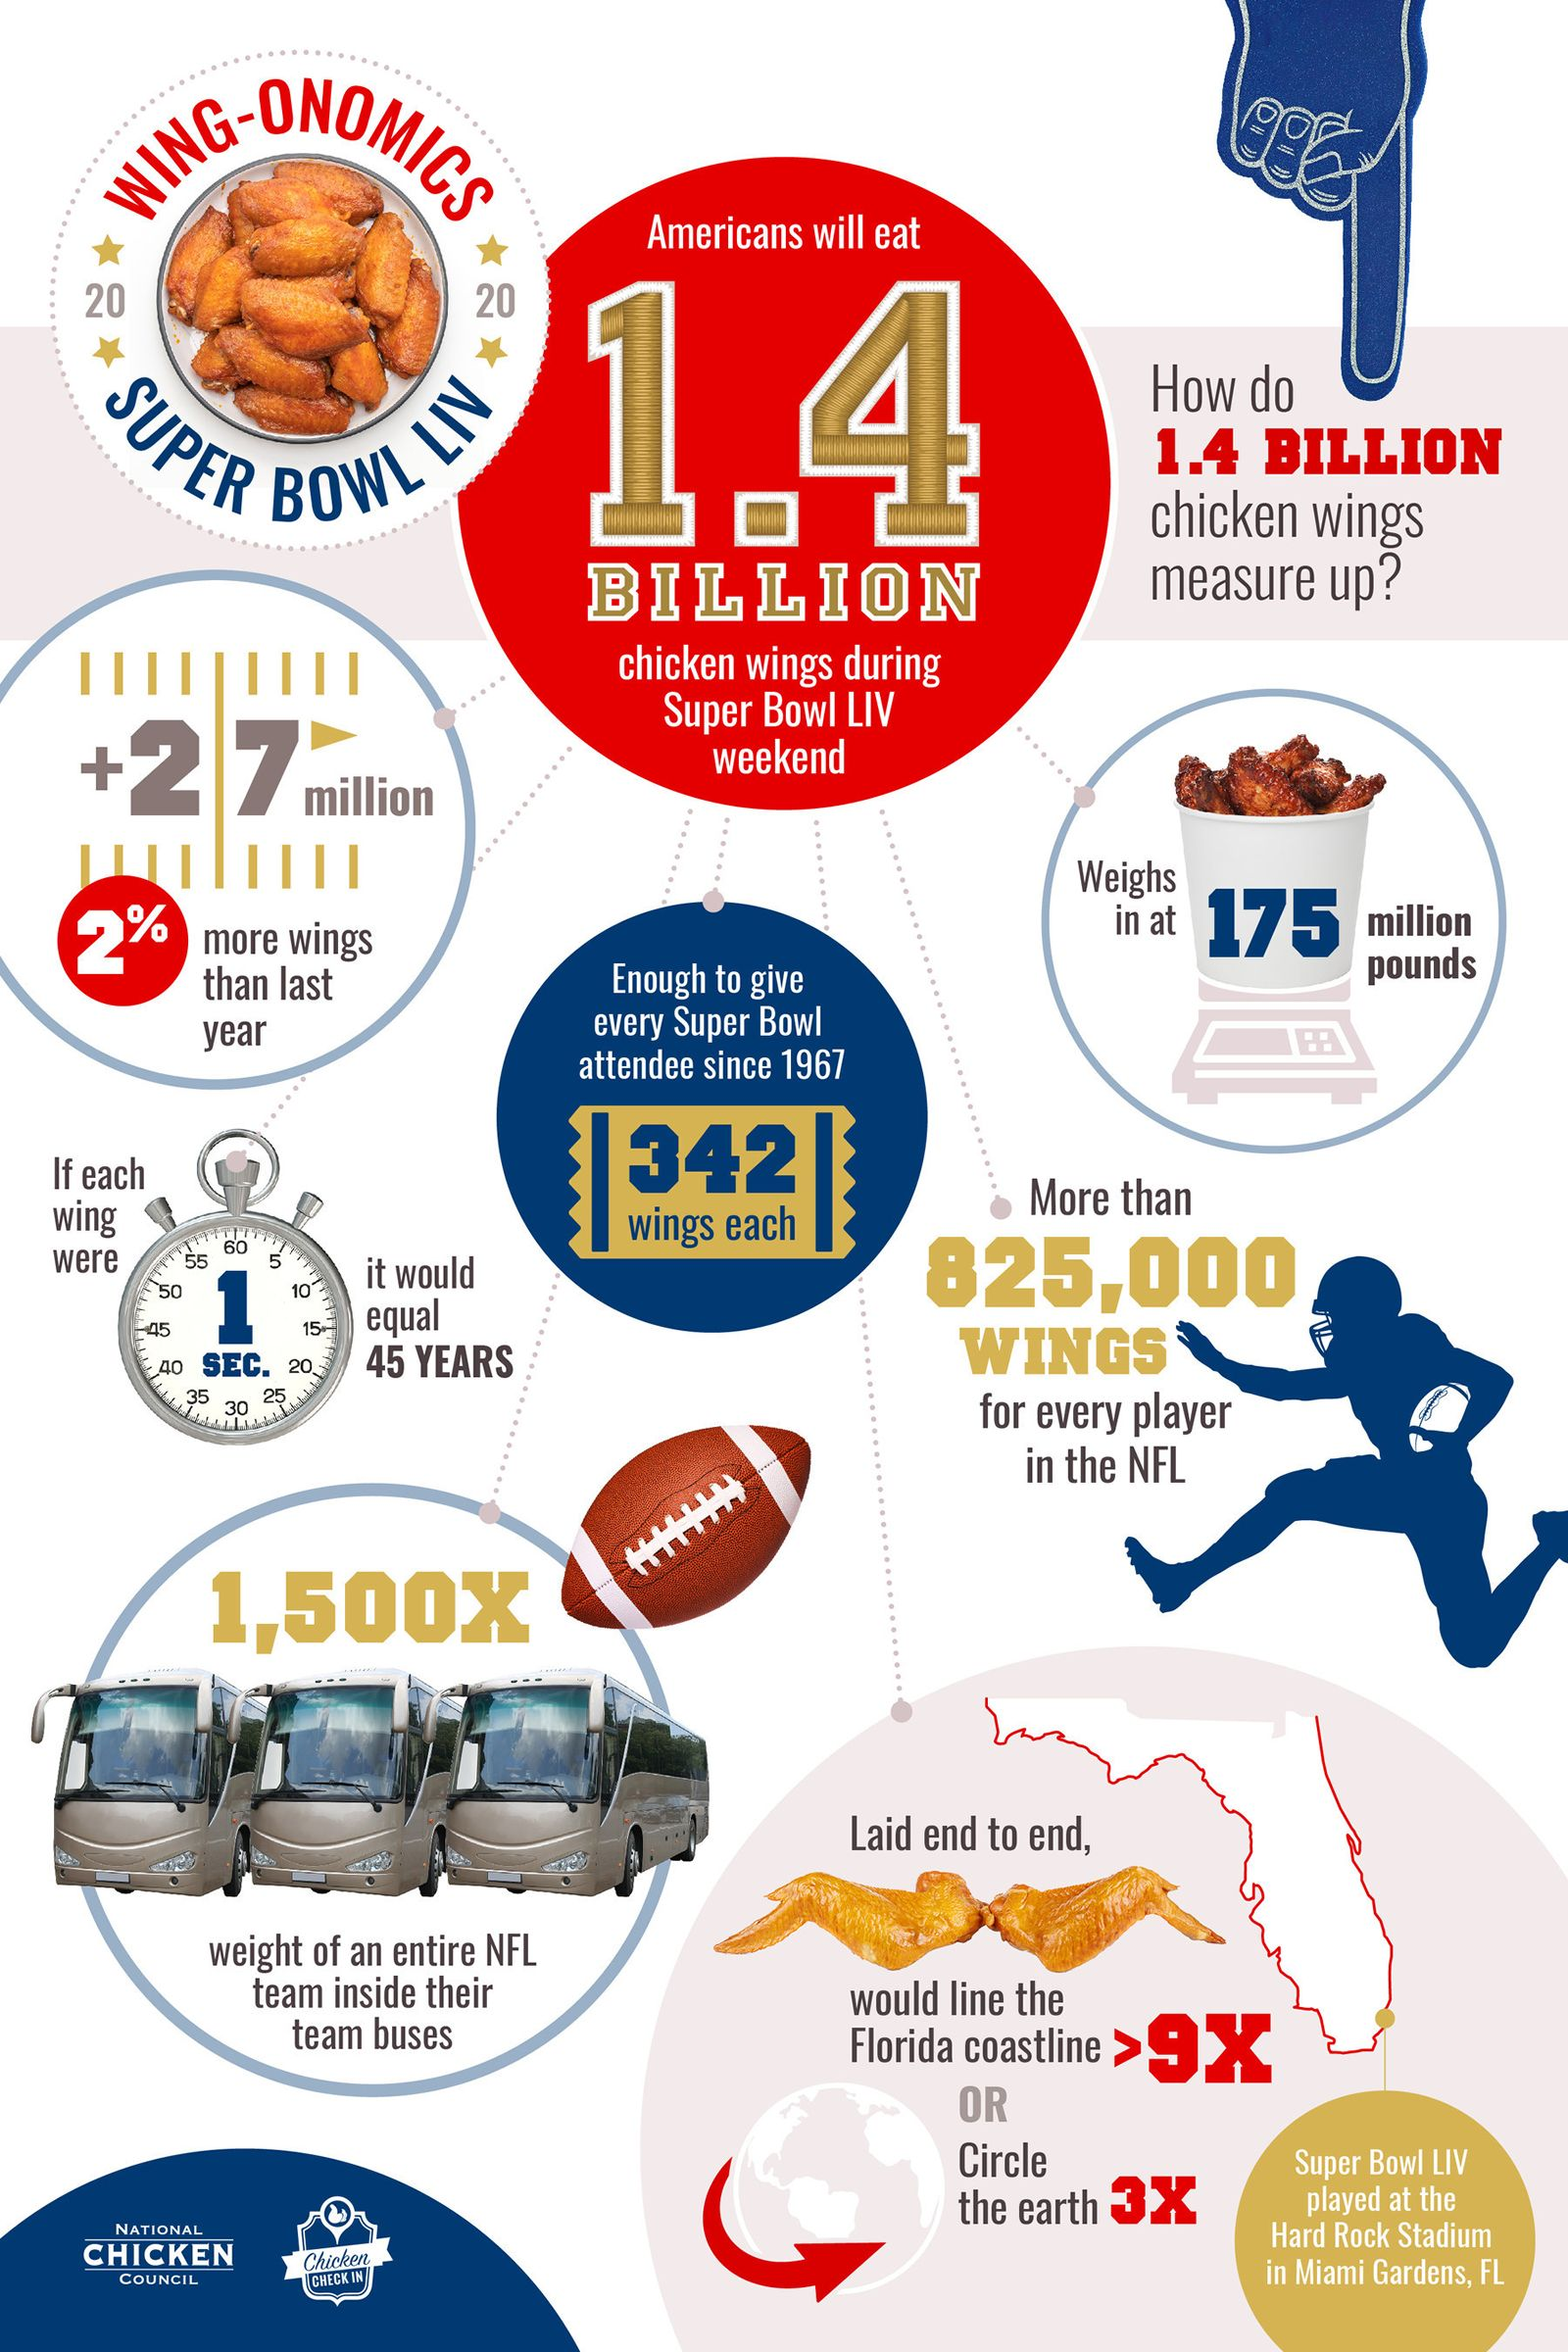 Americans to Eat Record 1.4 Billion Chicken Wings for Super Bowl LIV infographic